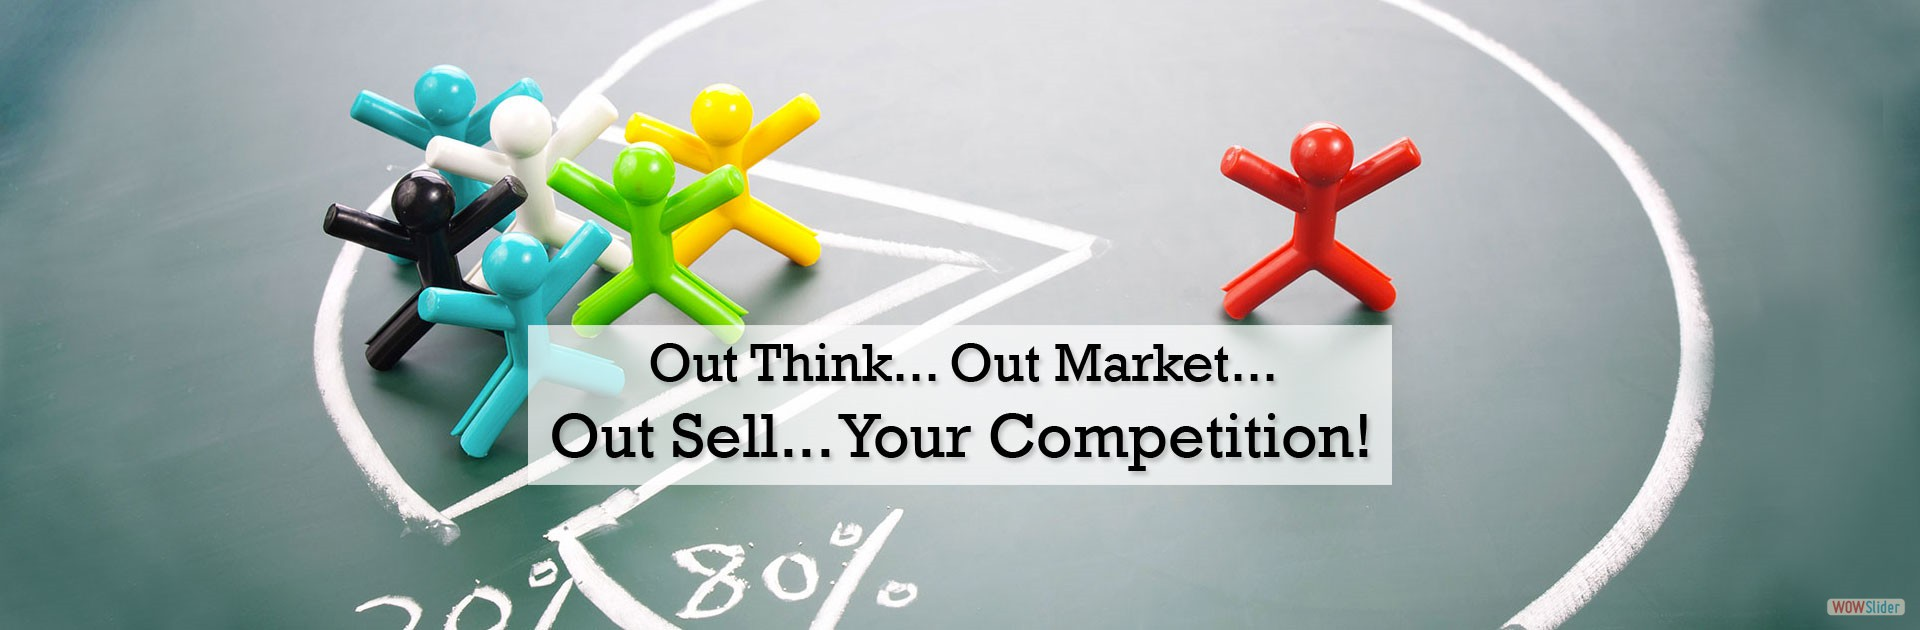 Out Think, Out Market, Out Sell Your Competition